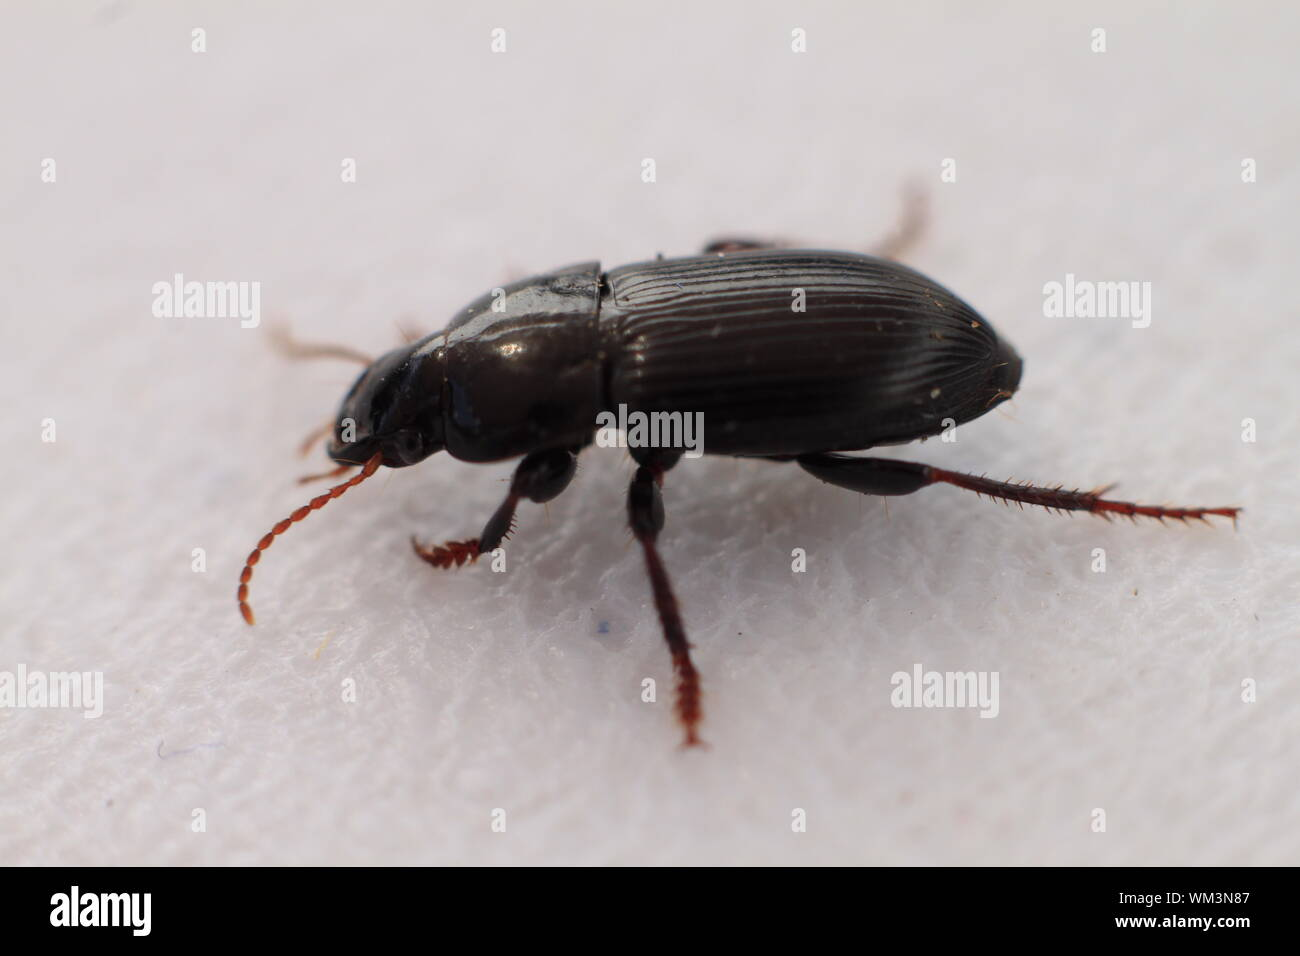 Macro Shot Of Beetle On White Background Stock Photo